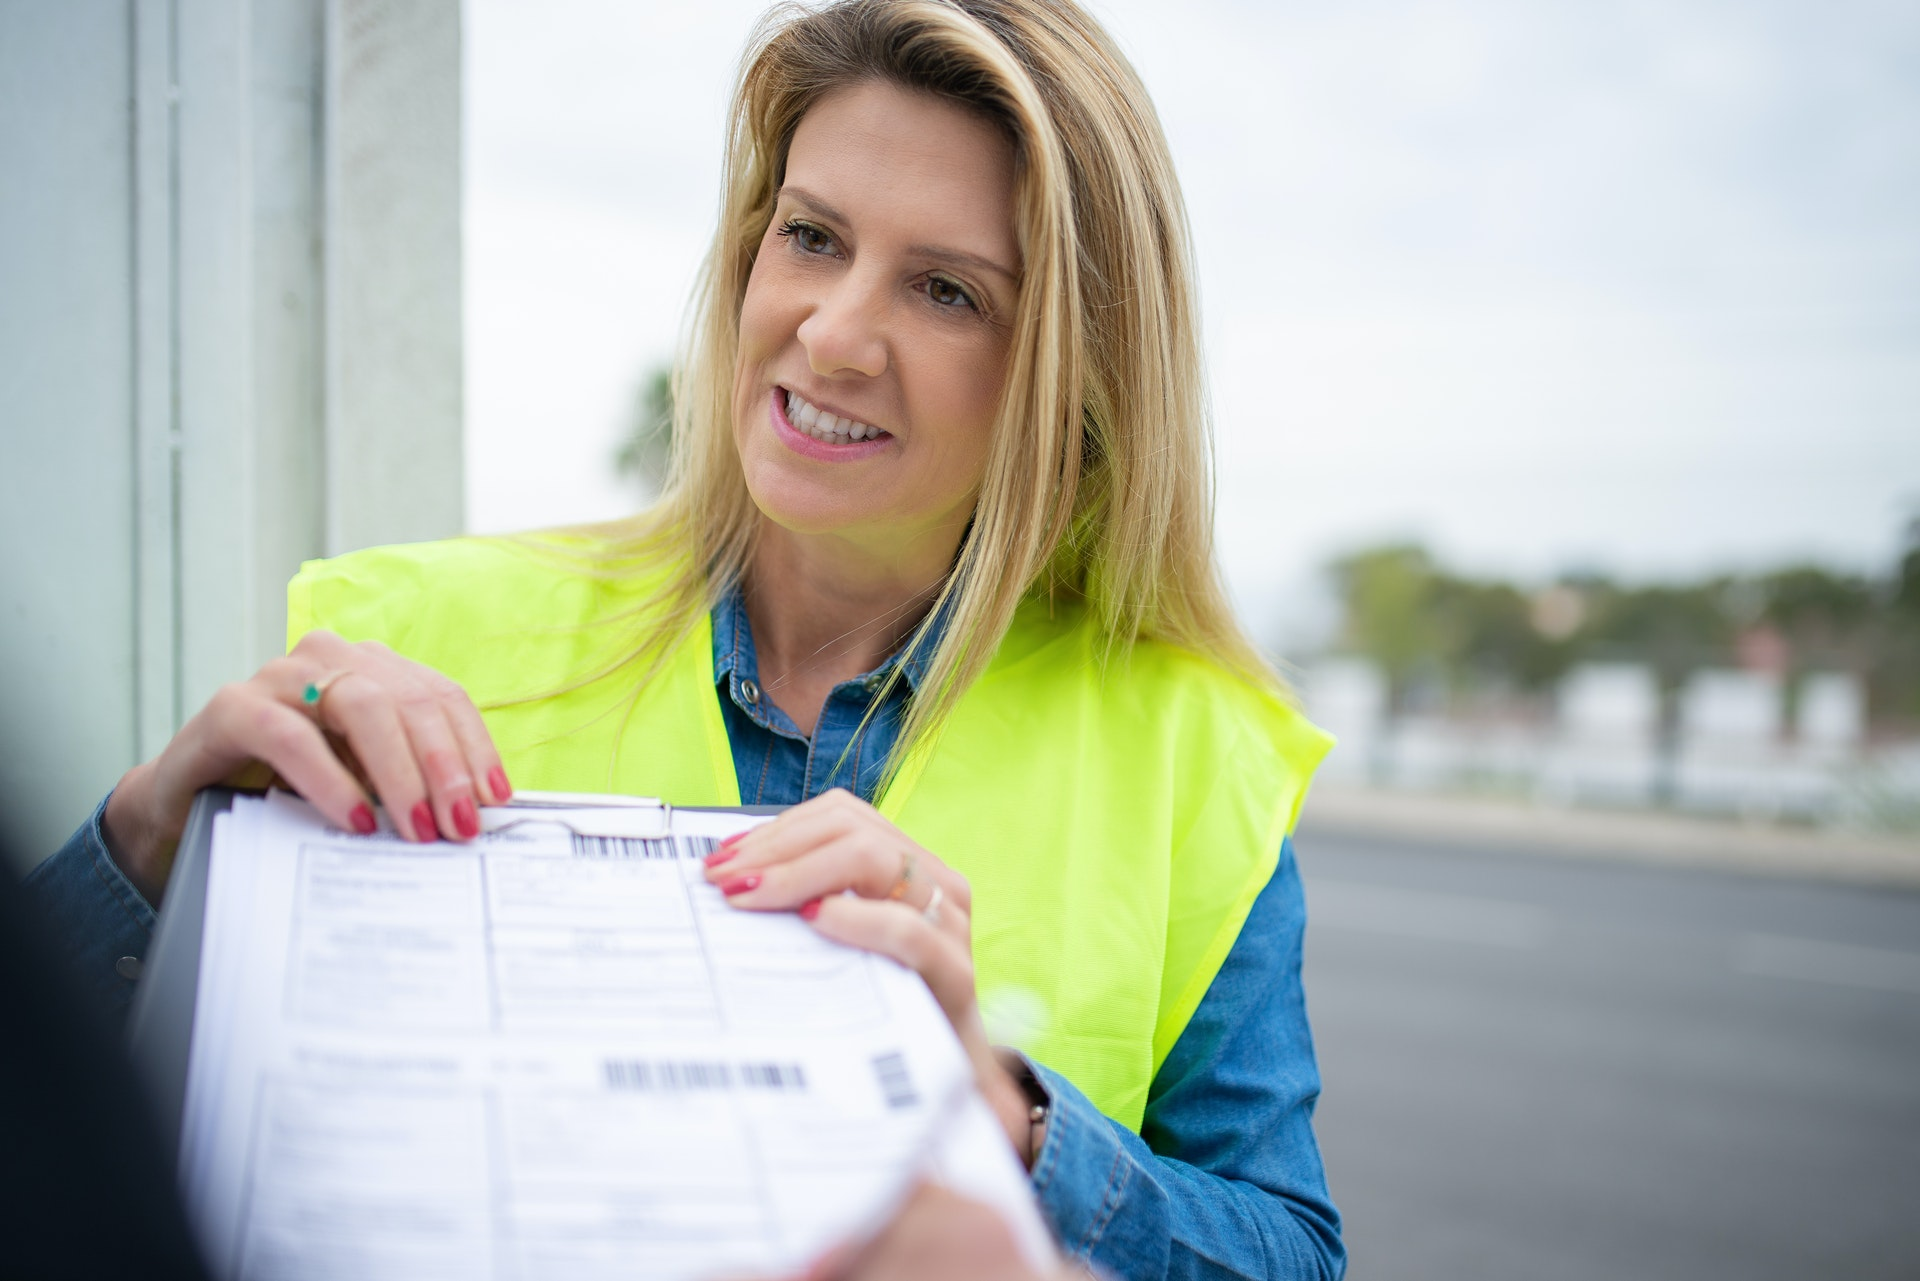 Interesting Facts About Couriers You Probably Do Not Know